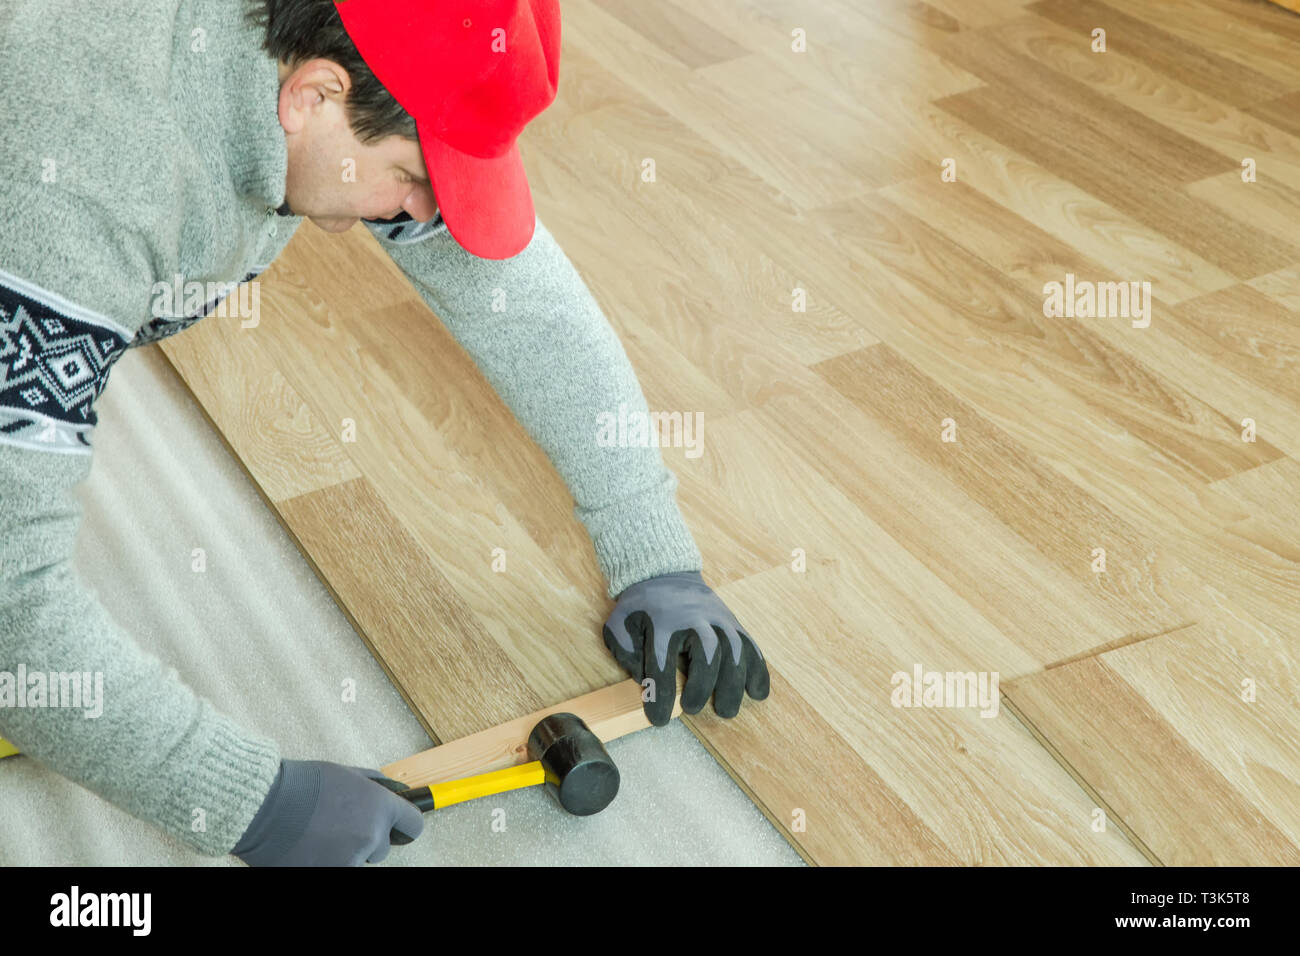 Man laying laminate flooring in construction concept - Stock Image